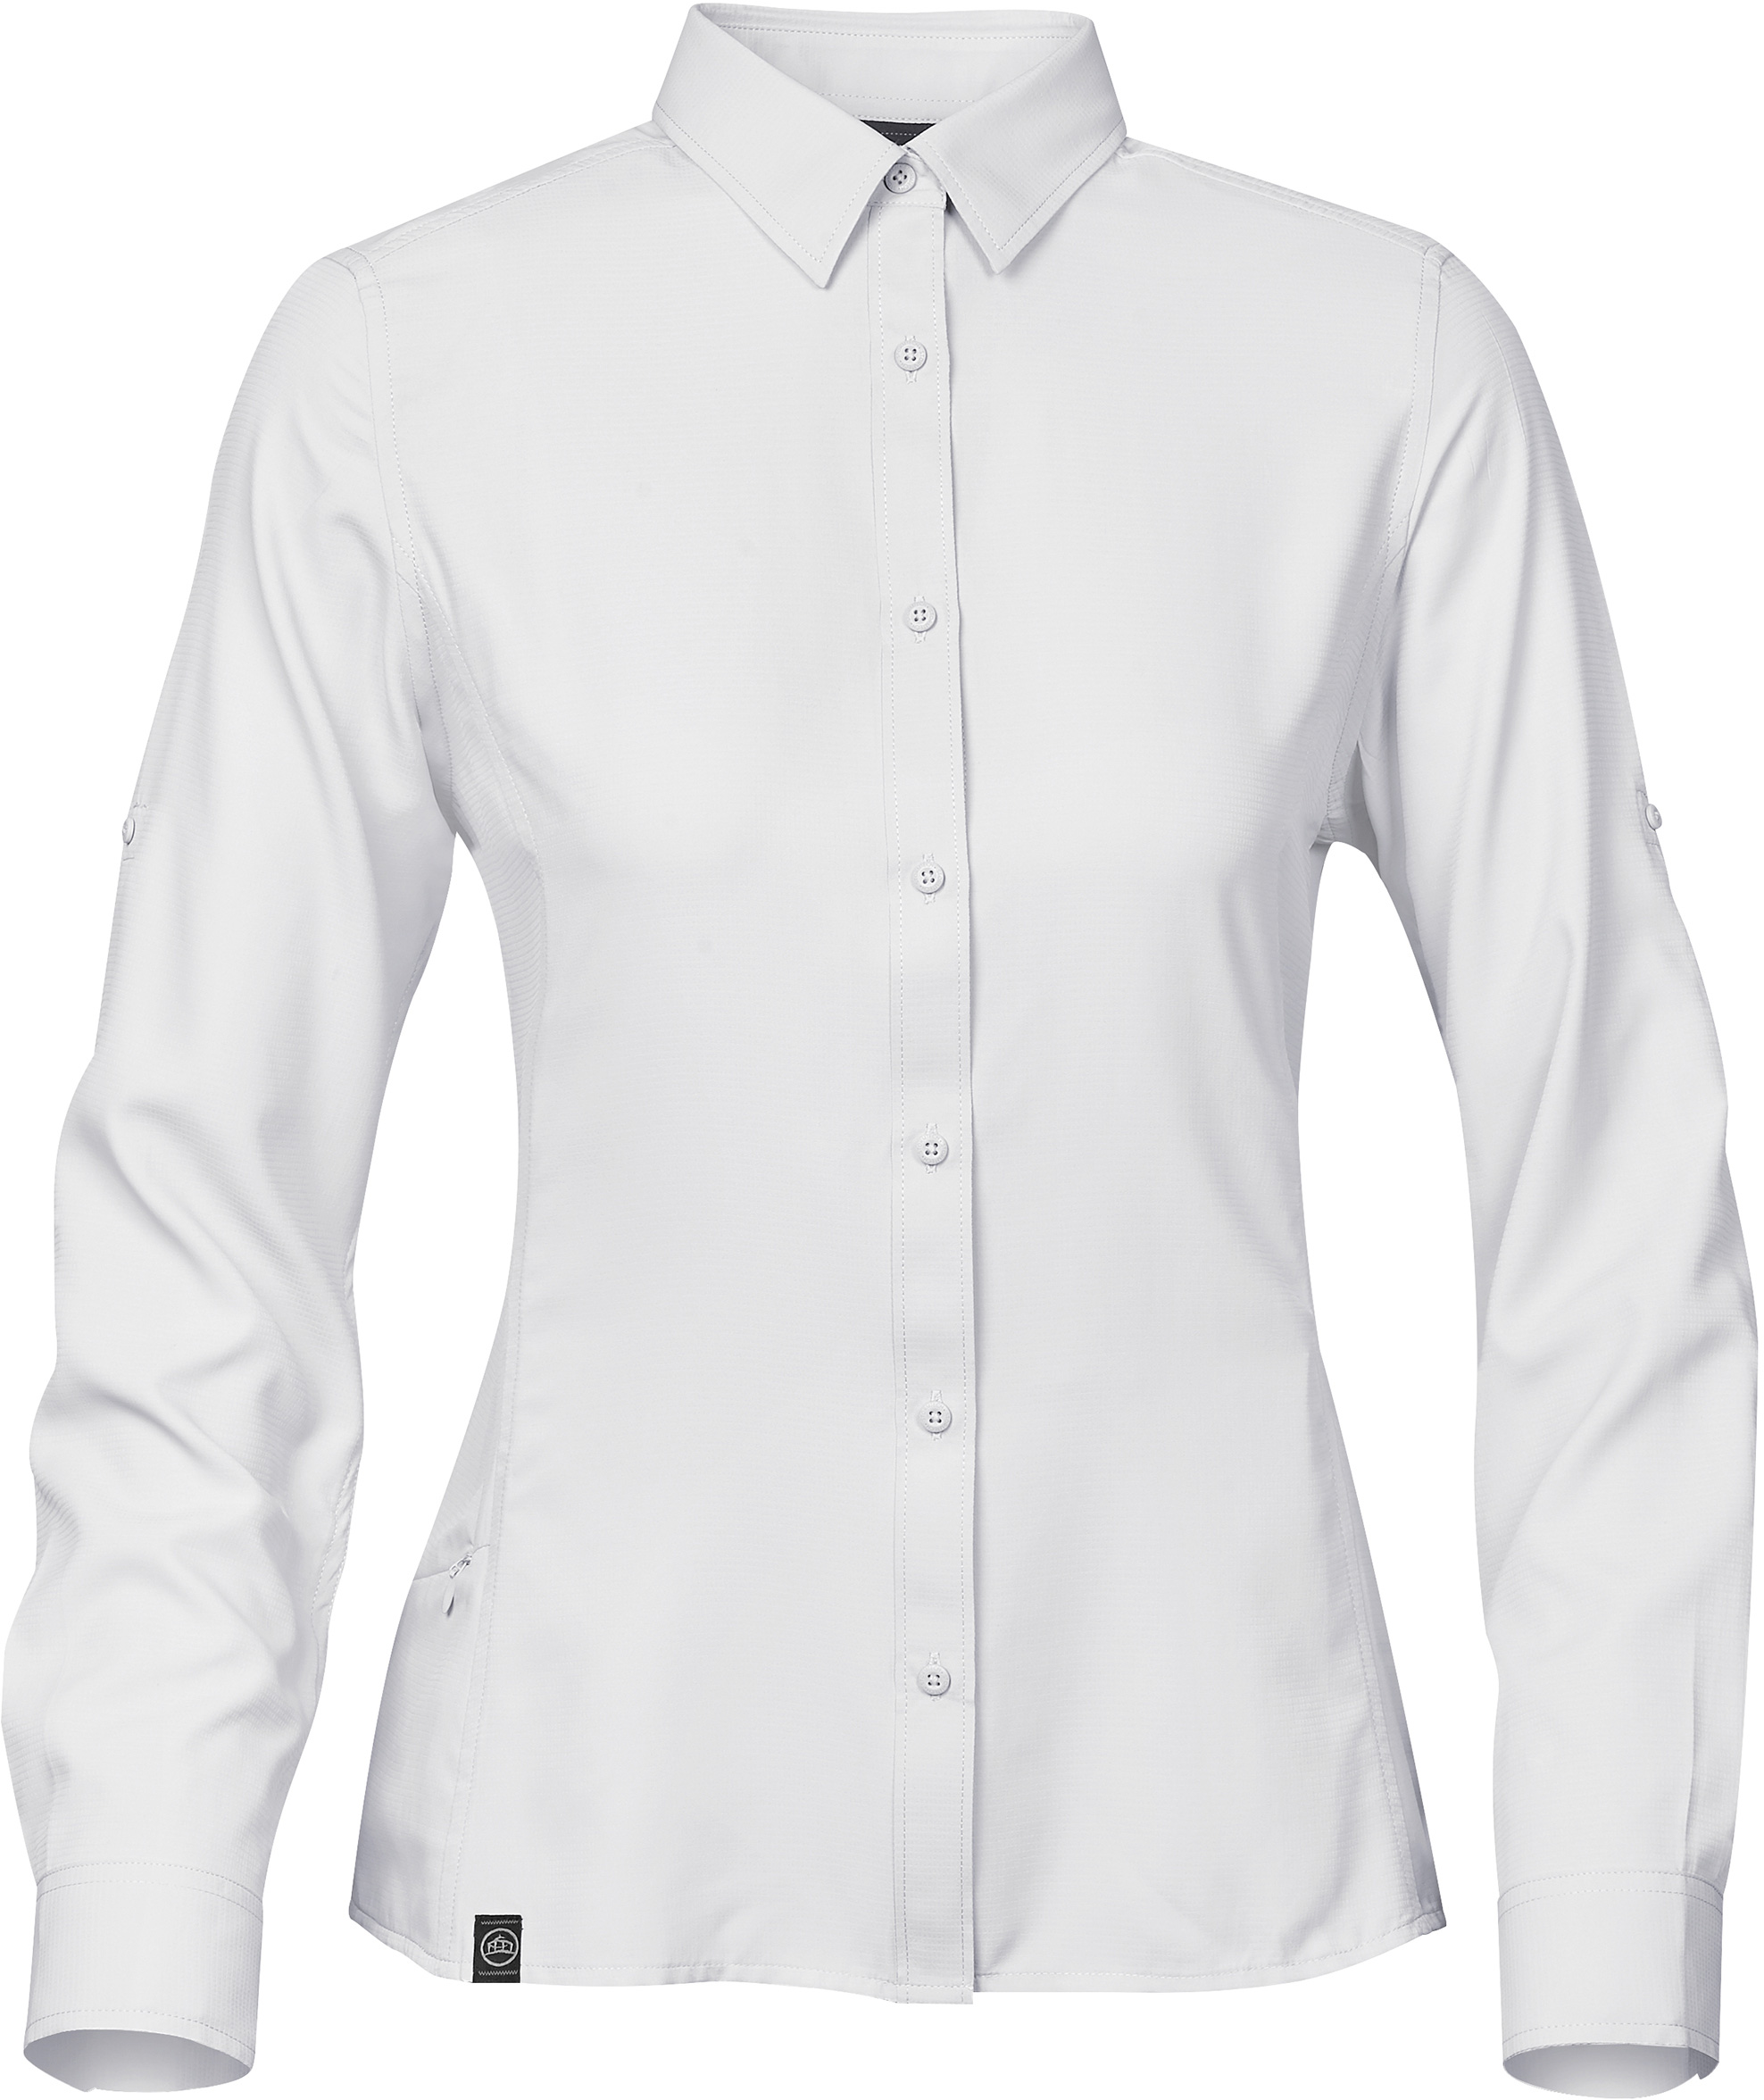 Stormtech SFS-1W - Women's Safari Shirt